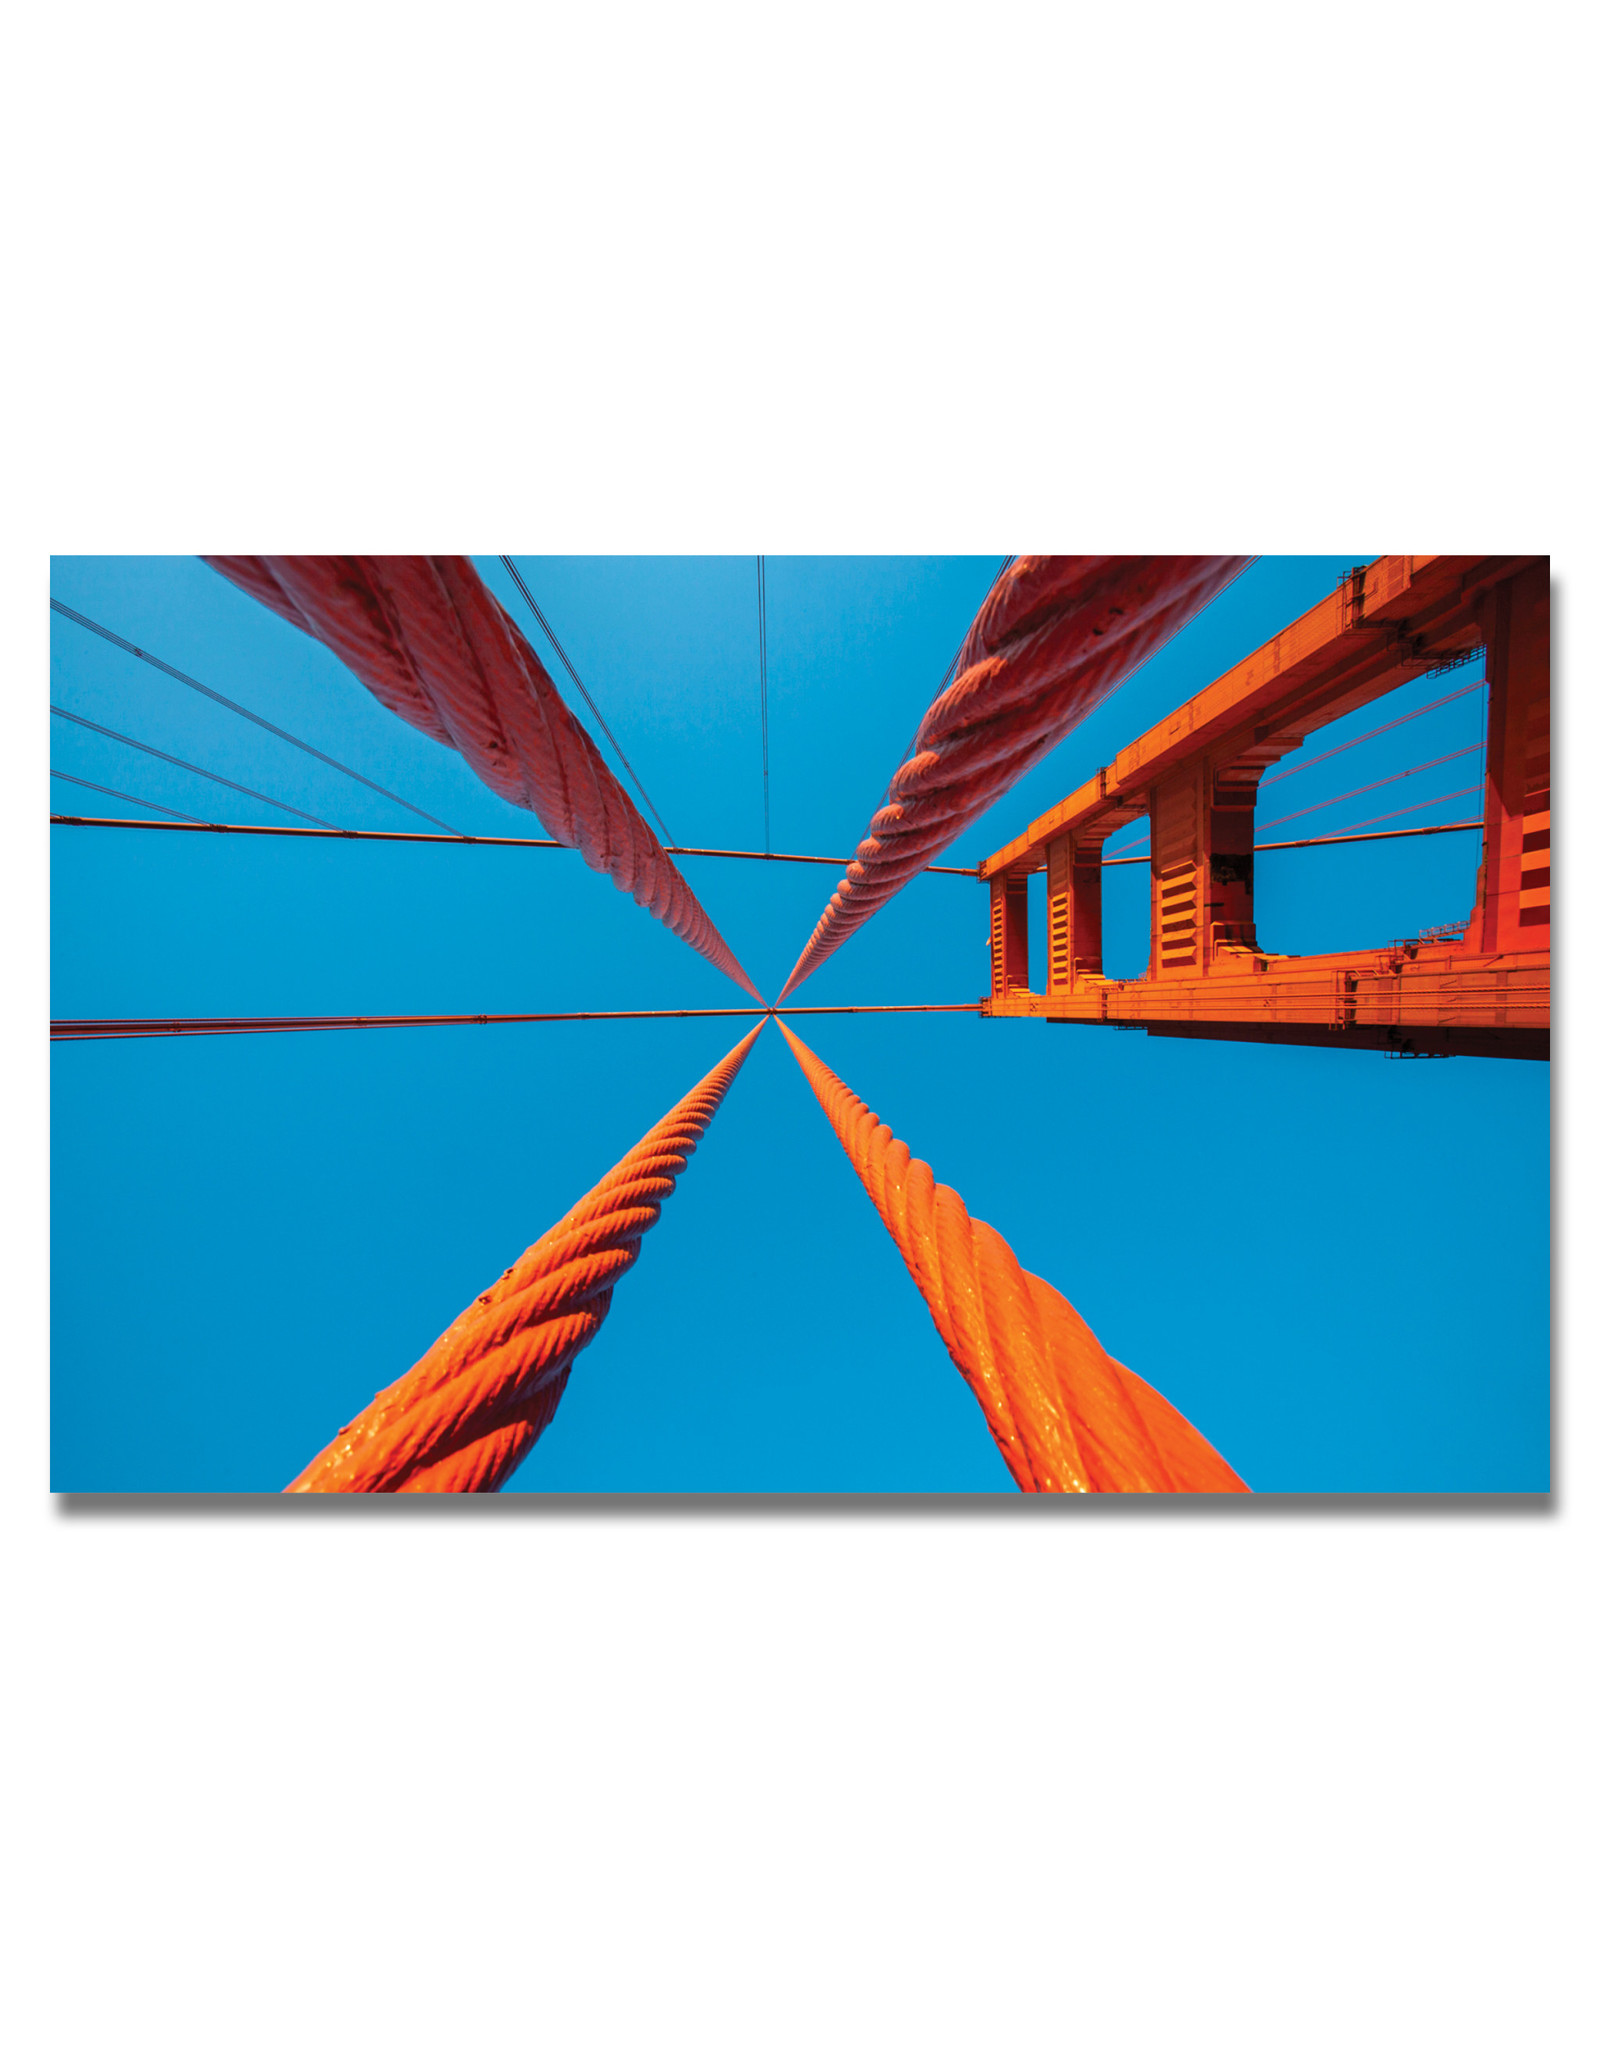 Golden Gate Bridge - No. 1